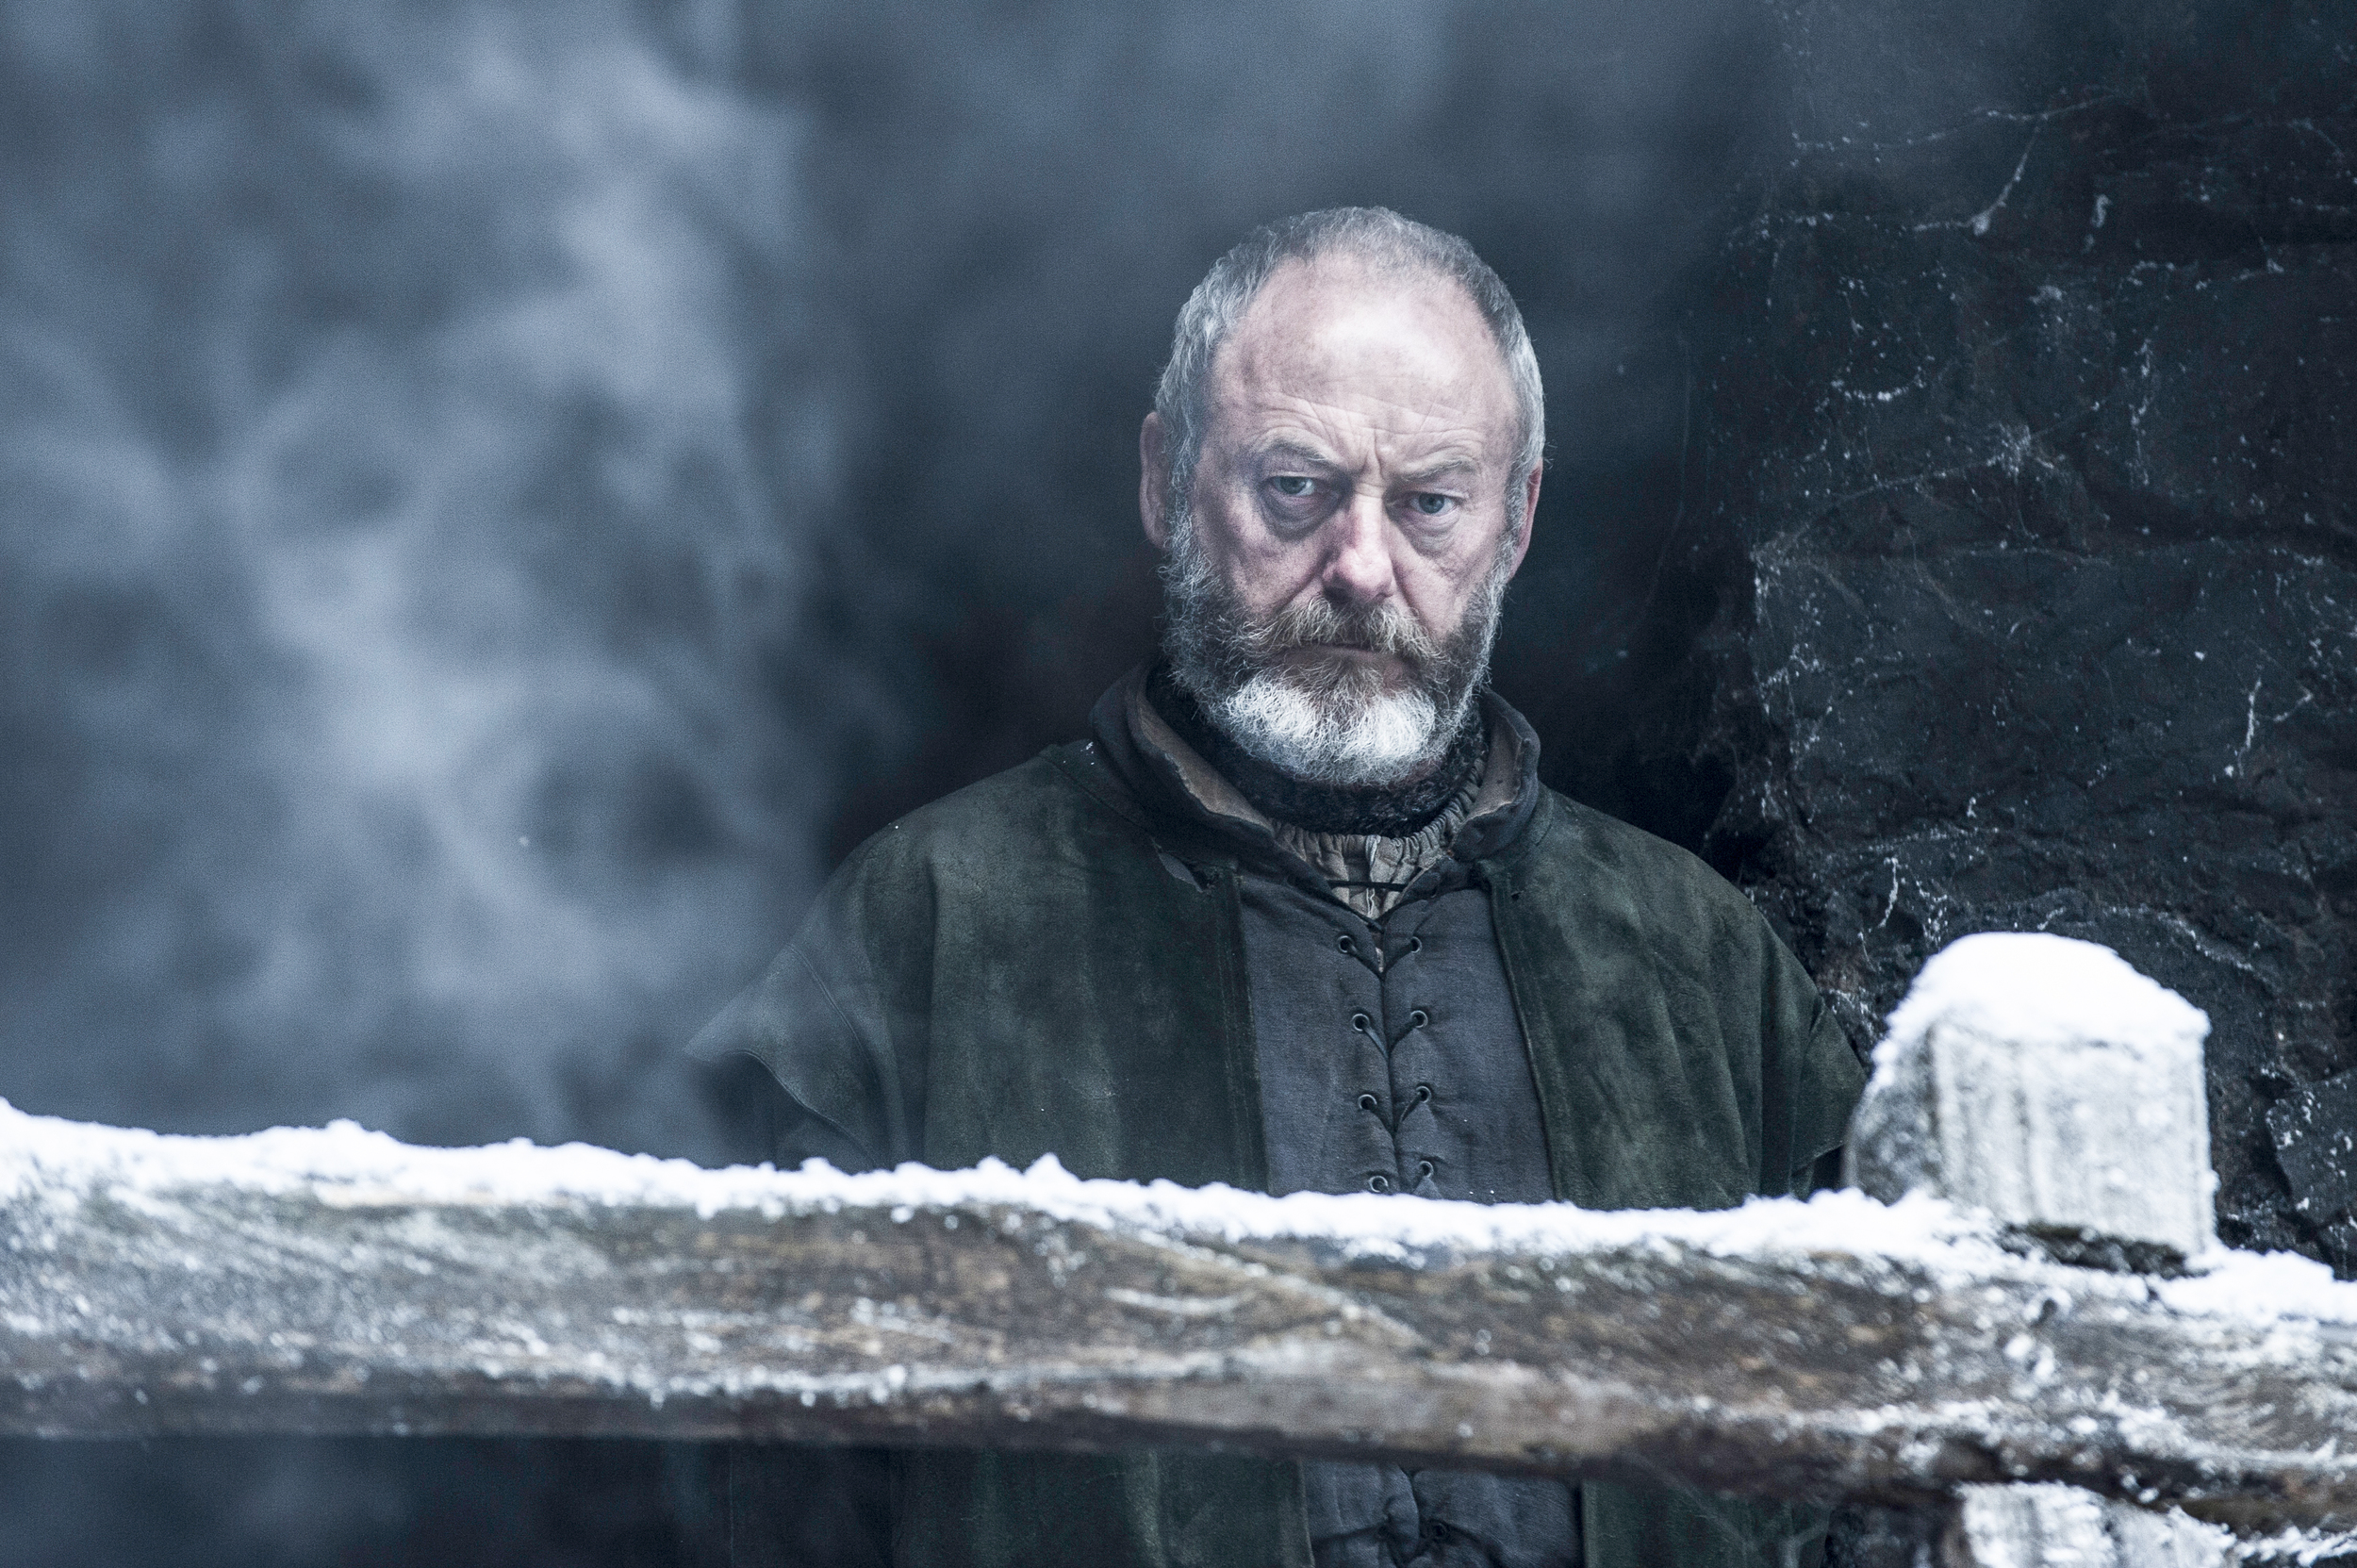 game of thrones season 6 photos, davos seaworth, liam cunningham